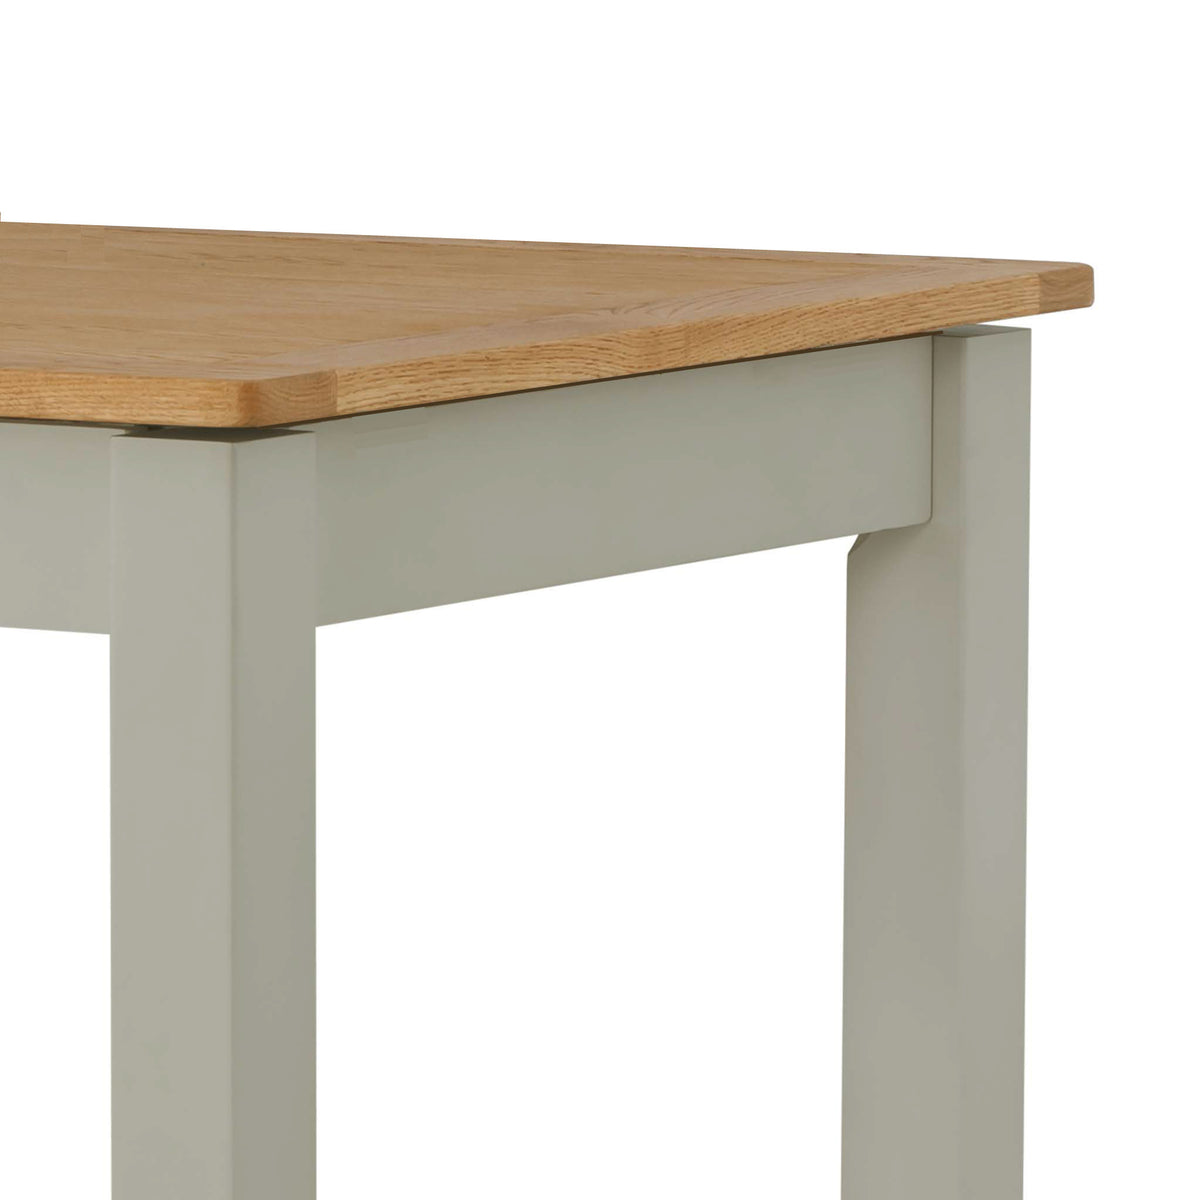 The Padstow Grey 120cm Wooden Dining Table - Part of the Dining Set - Close Up of Oak Table Top